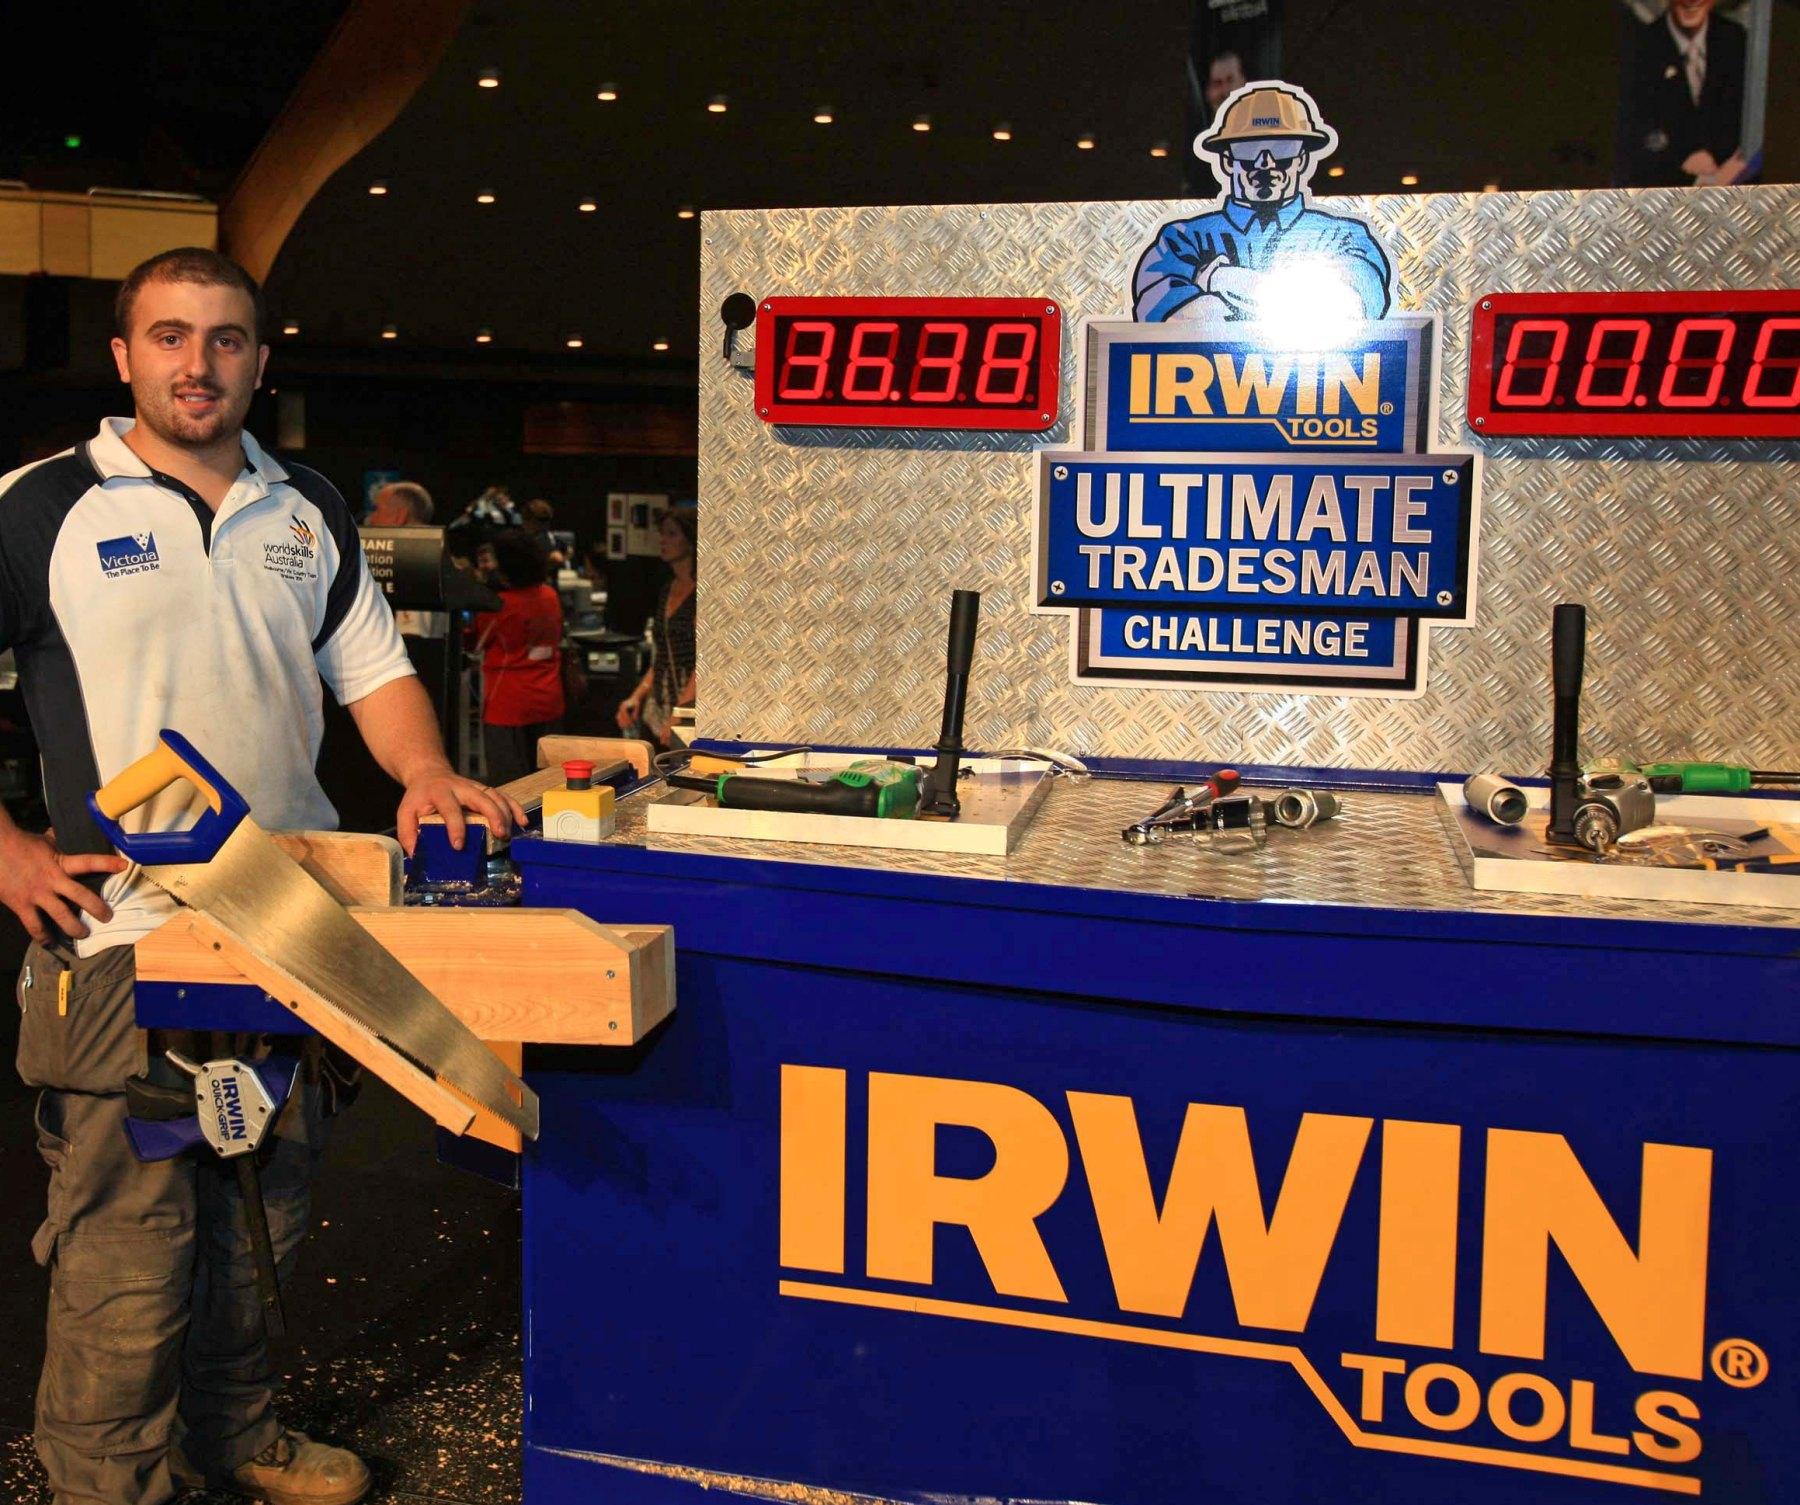 Second IRWIN Ultimate Tradesman found